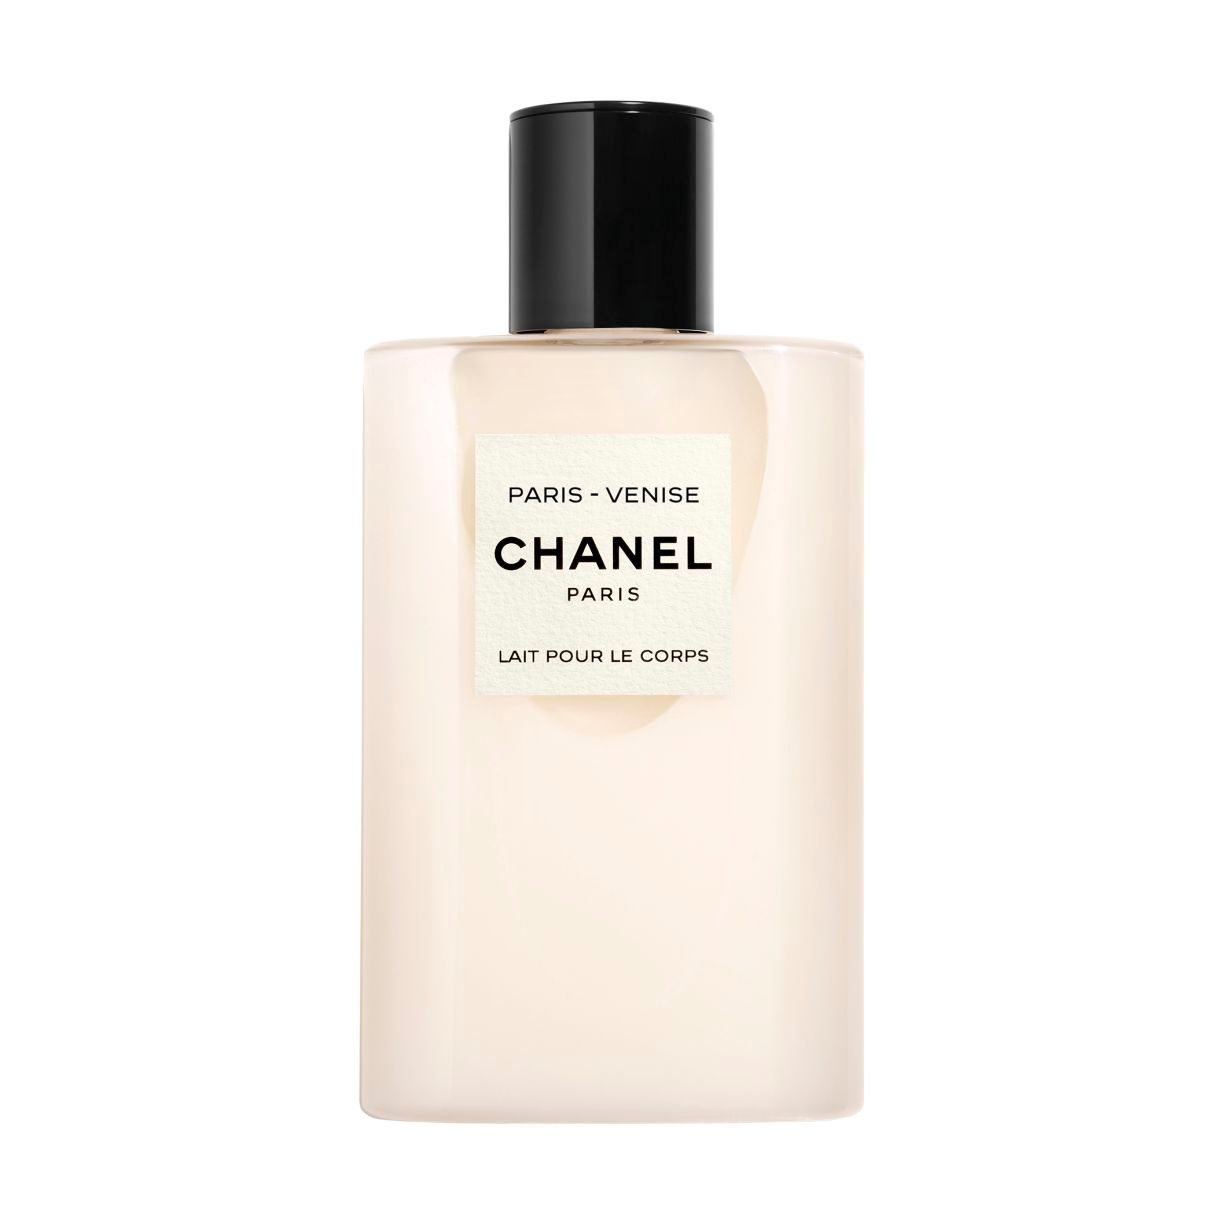 LES EAUX DE CHANEL PARIS - VENISE - BODY LOTION